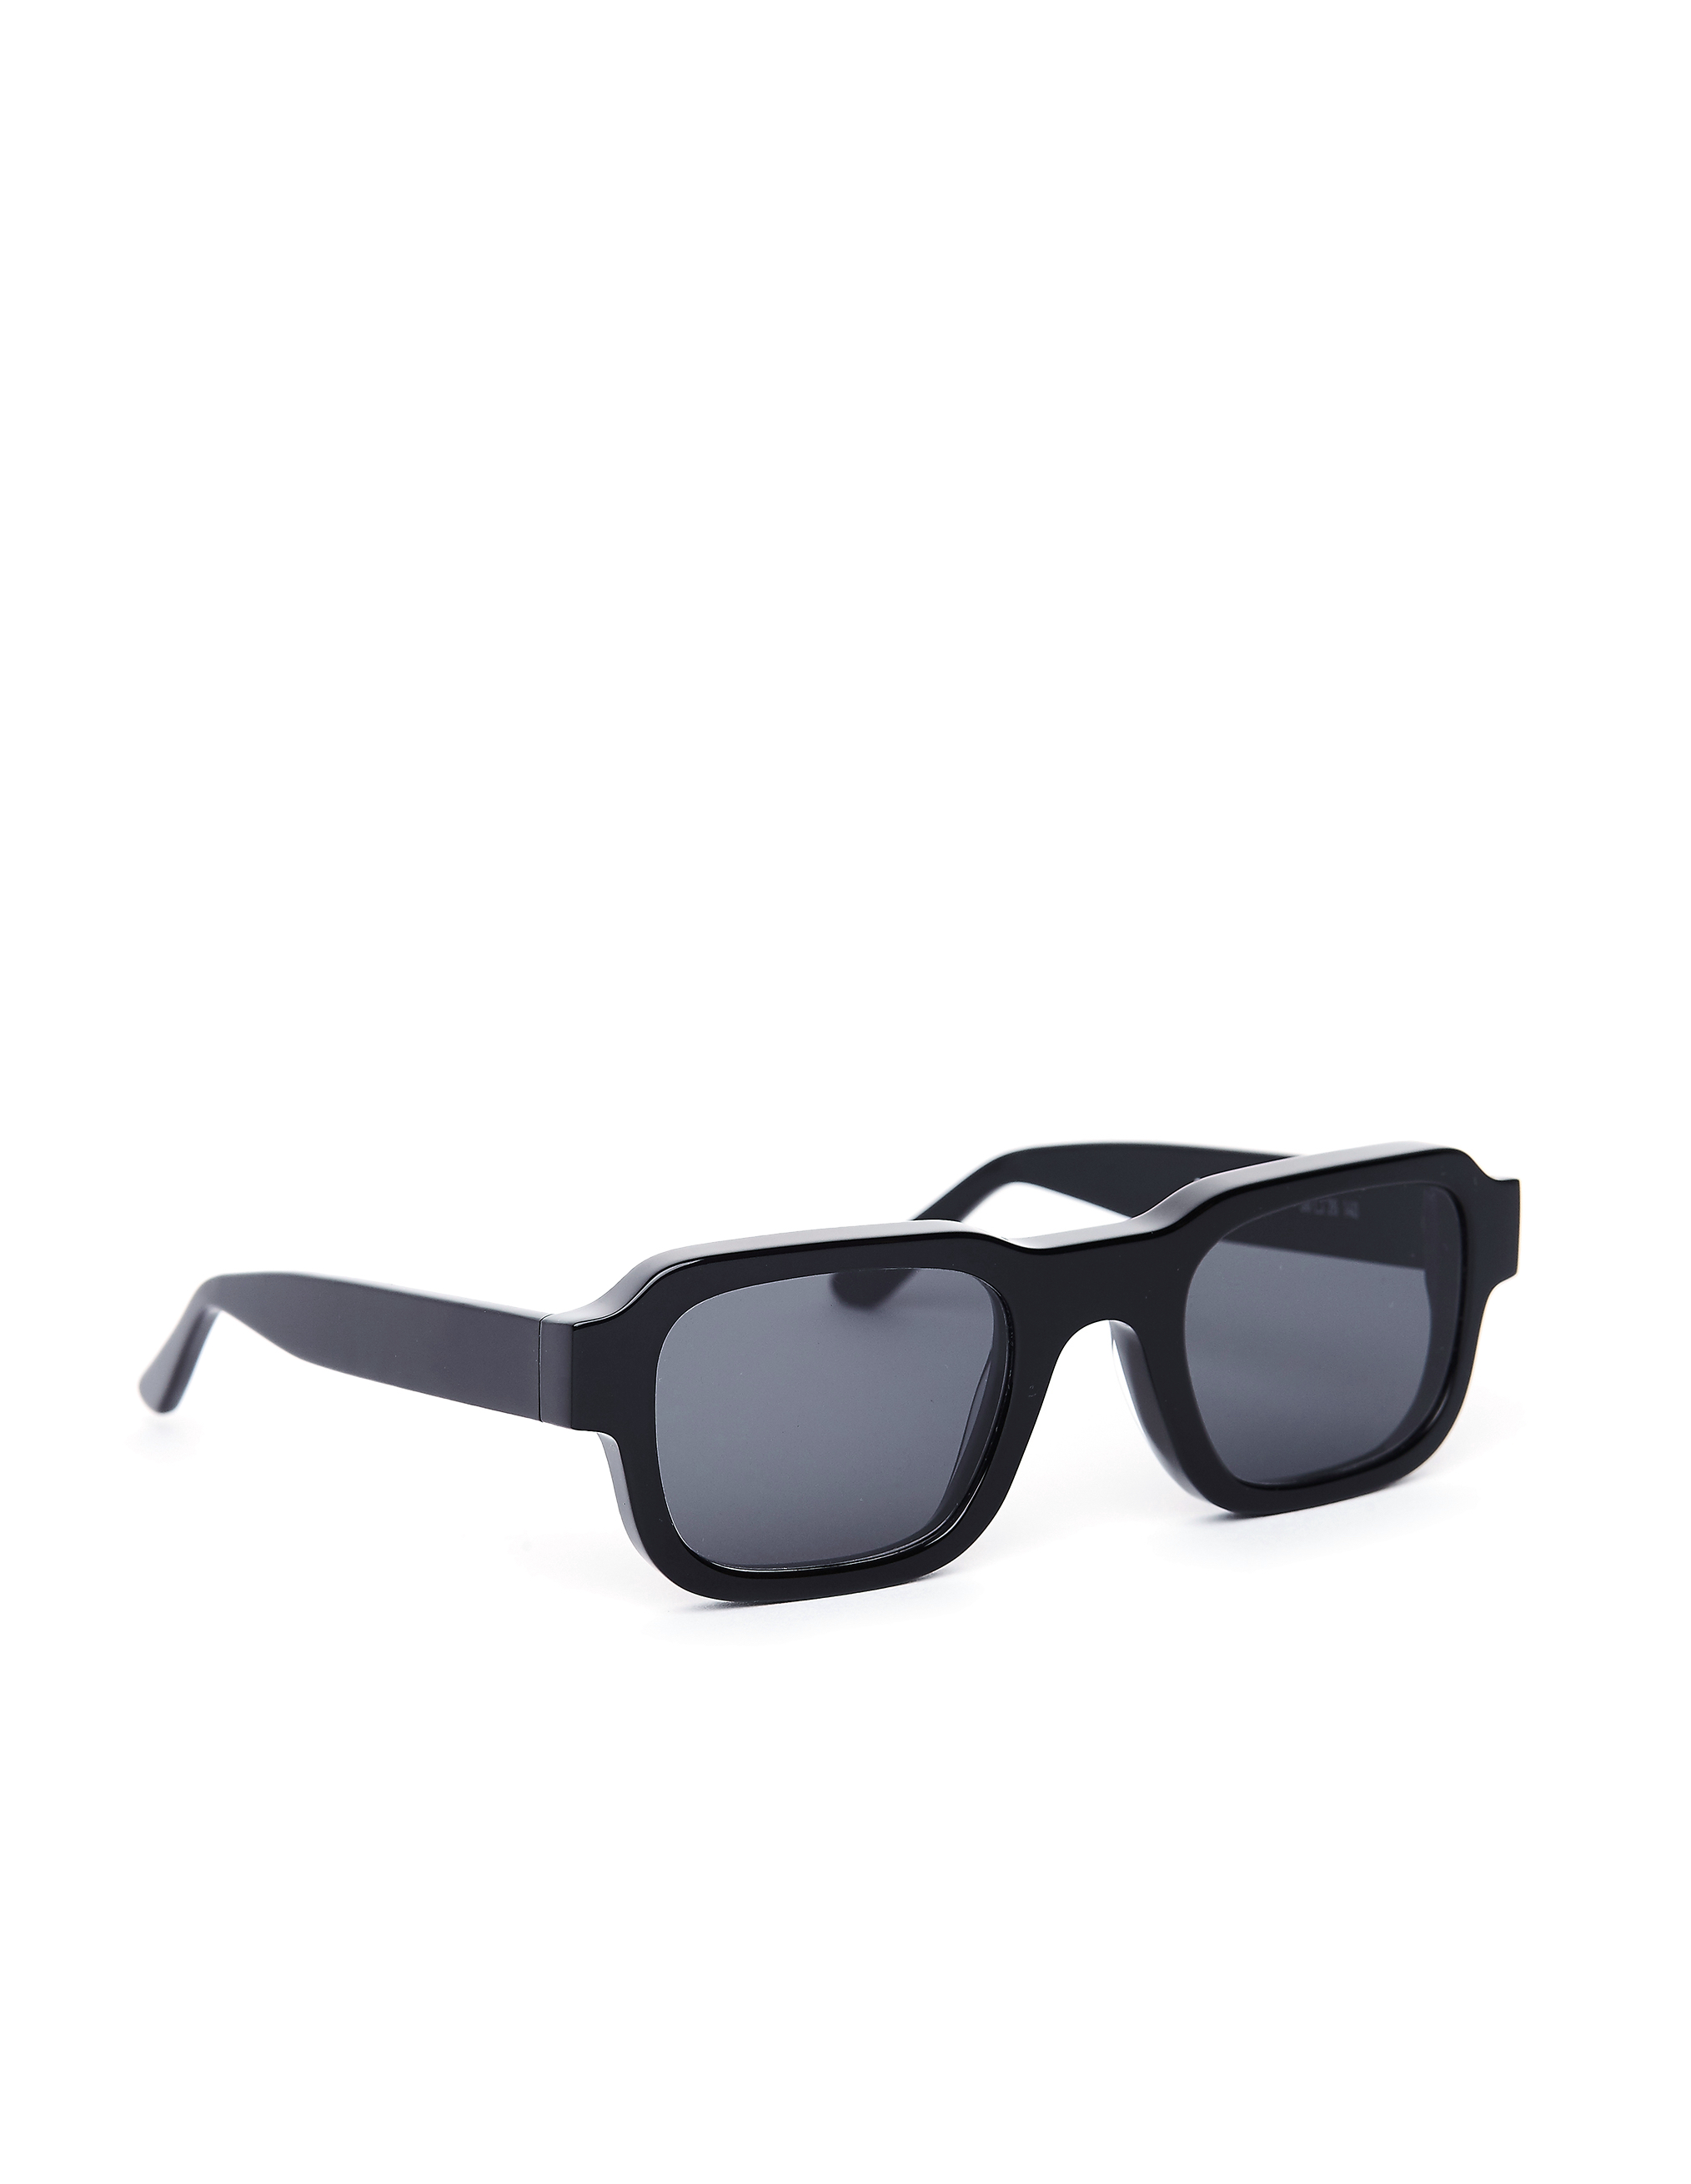 Thierry Lasry Thierry Lasry x Enfants Riches Deprimes The Isolar Sunglasses